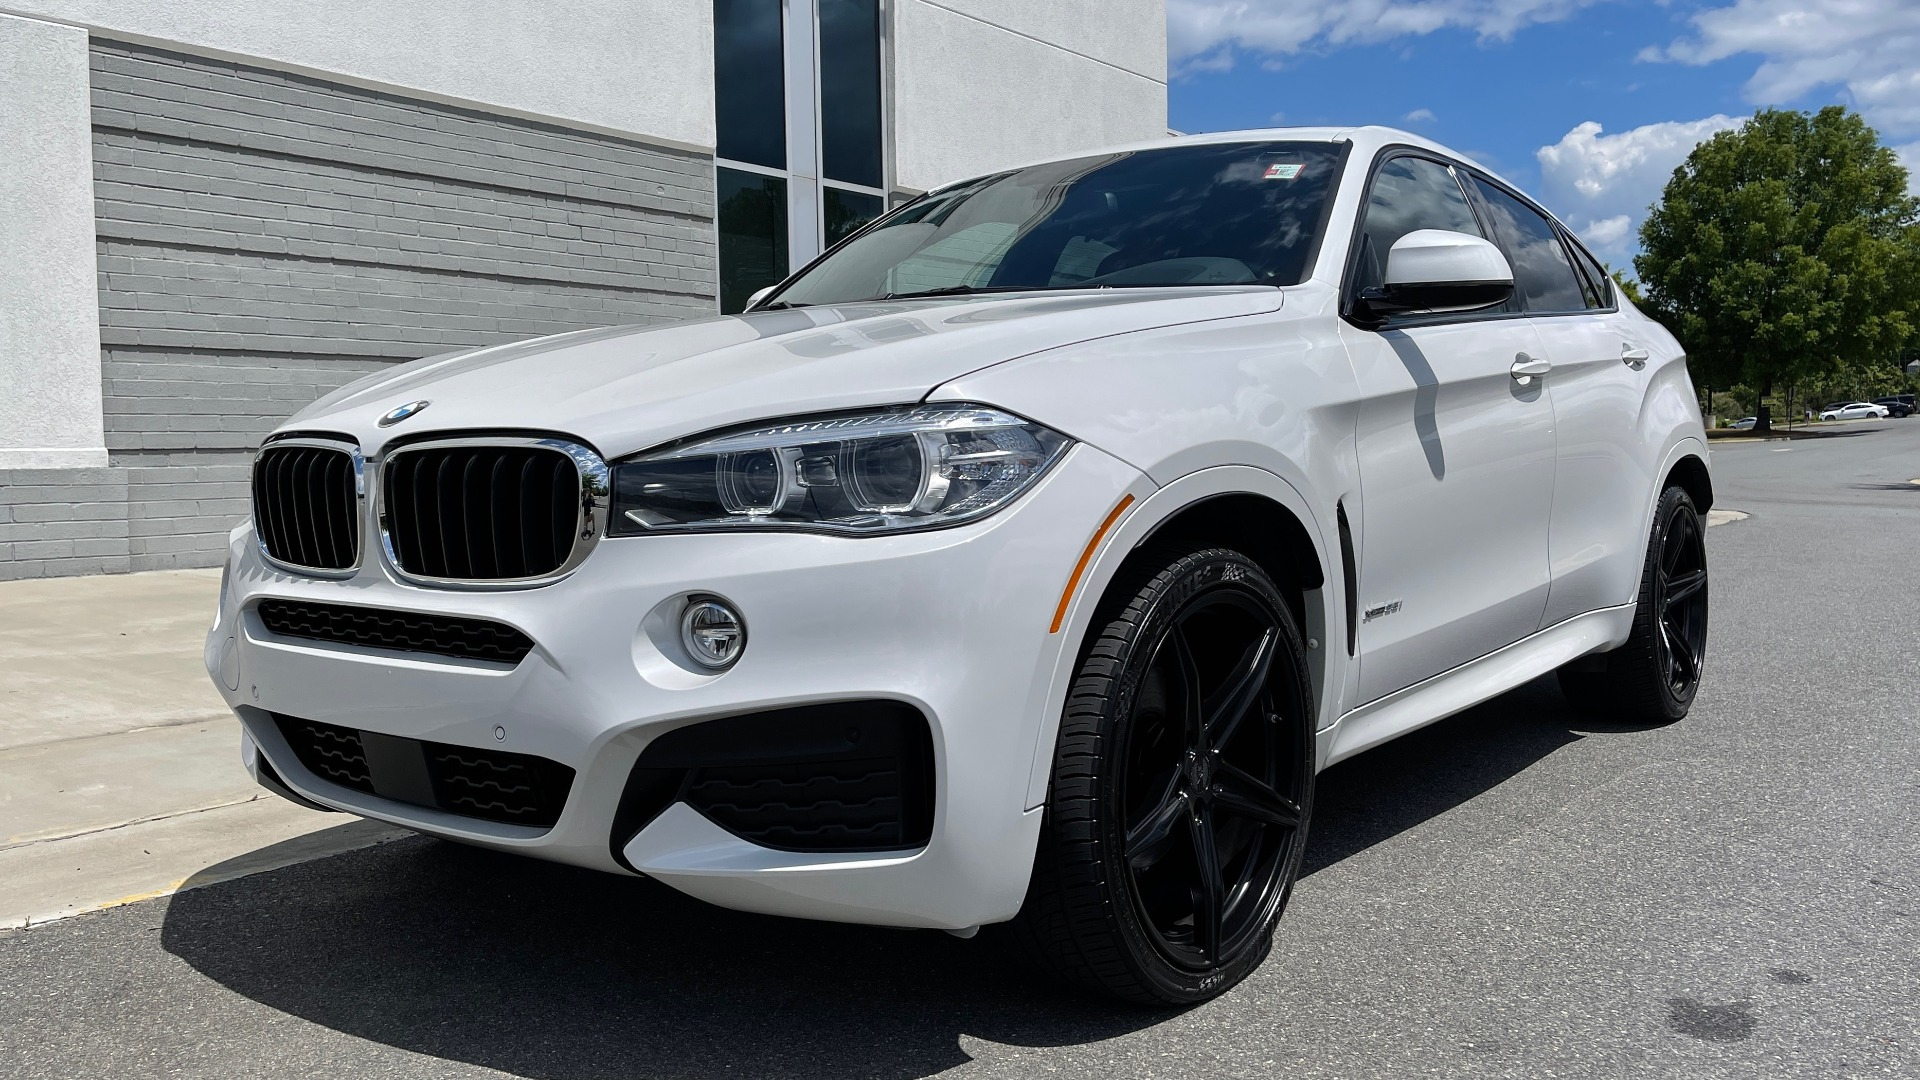 Used 2018 BMW X6 XDRIVE35I M-SPORT / NAV / DRVR ASST PLUS / ADAPT M-SUSP / REARVIEW for sale Sold at Formula Imports in Charlotte NC 28227 4